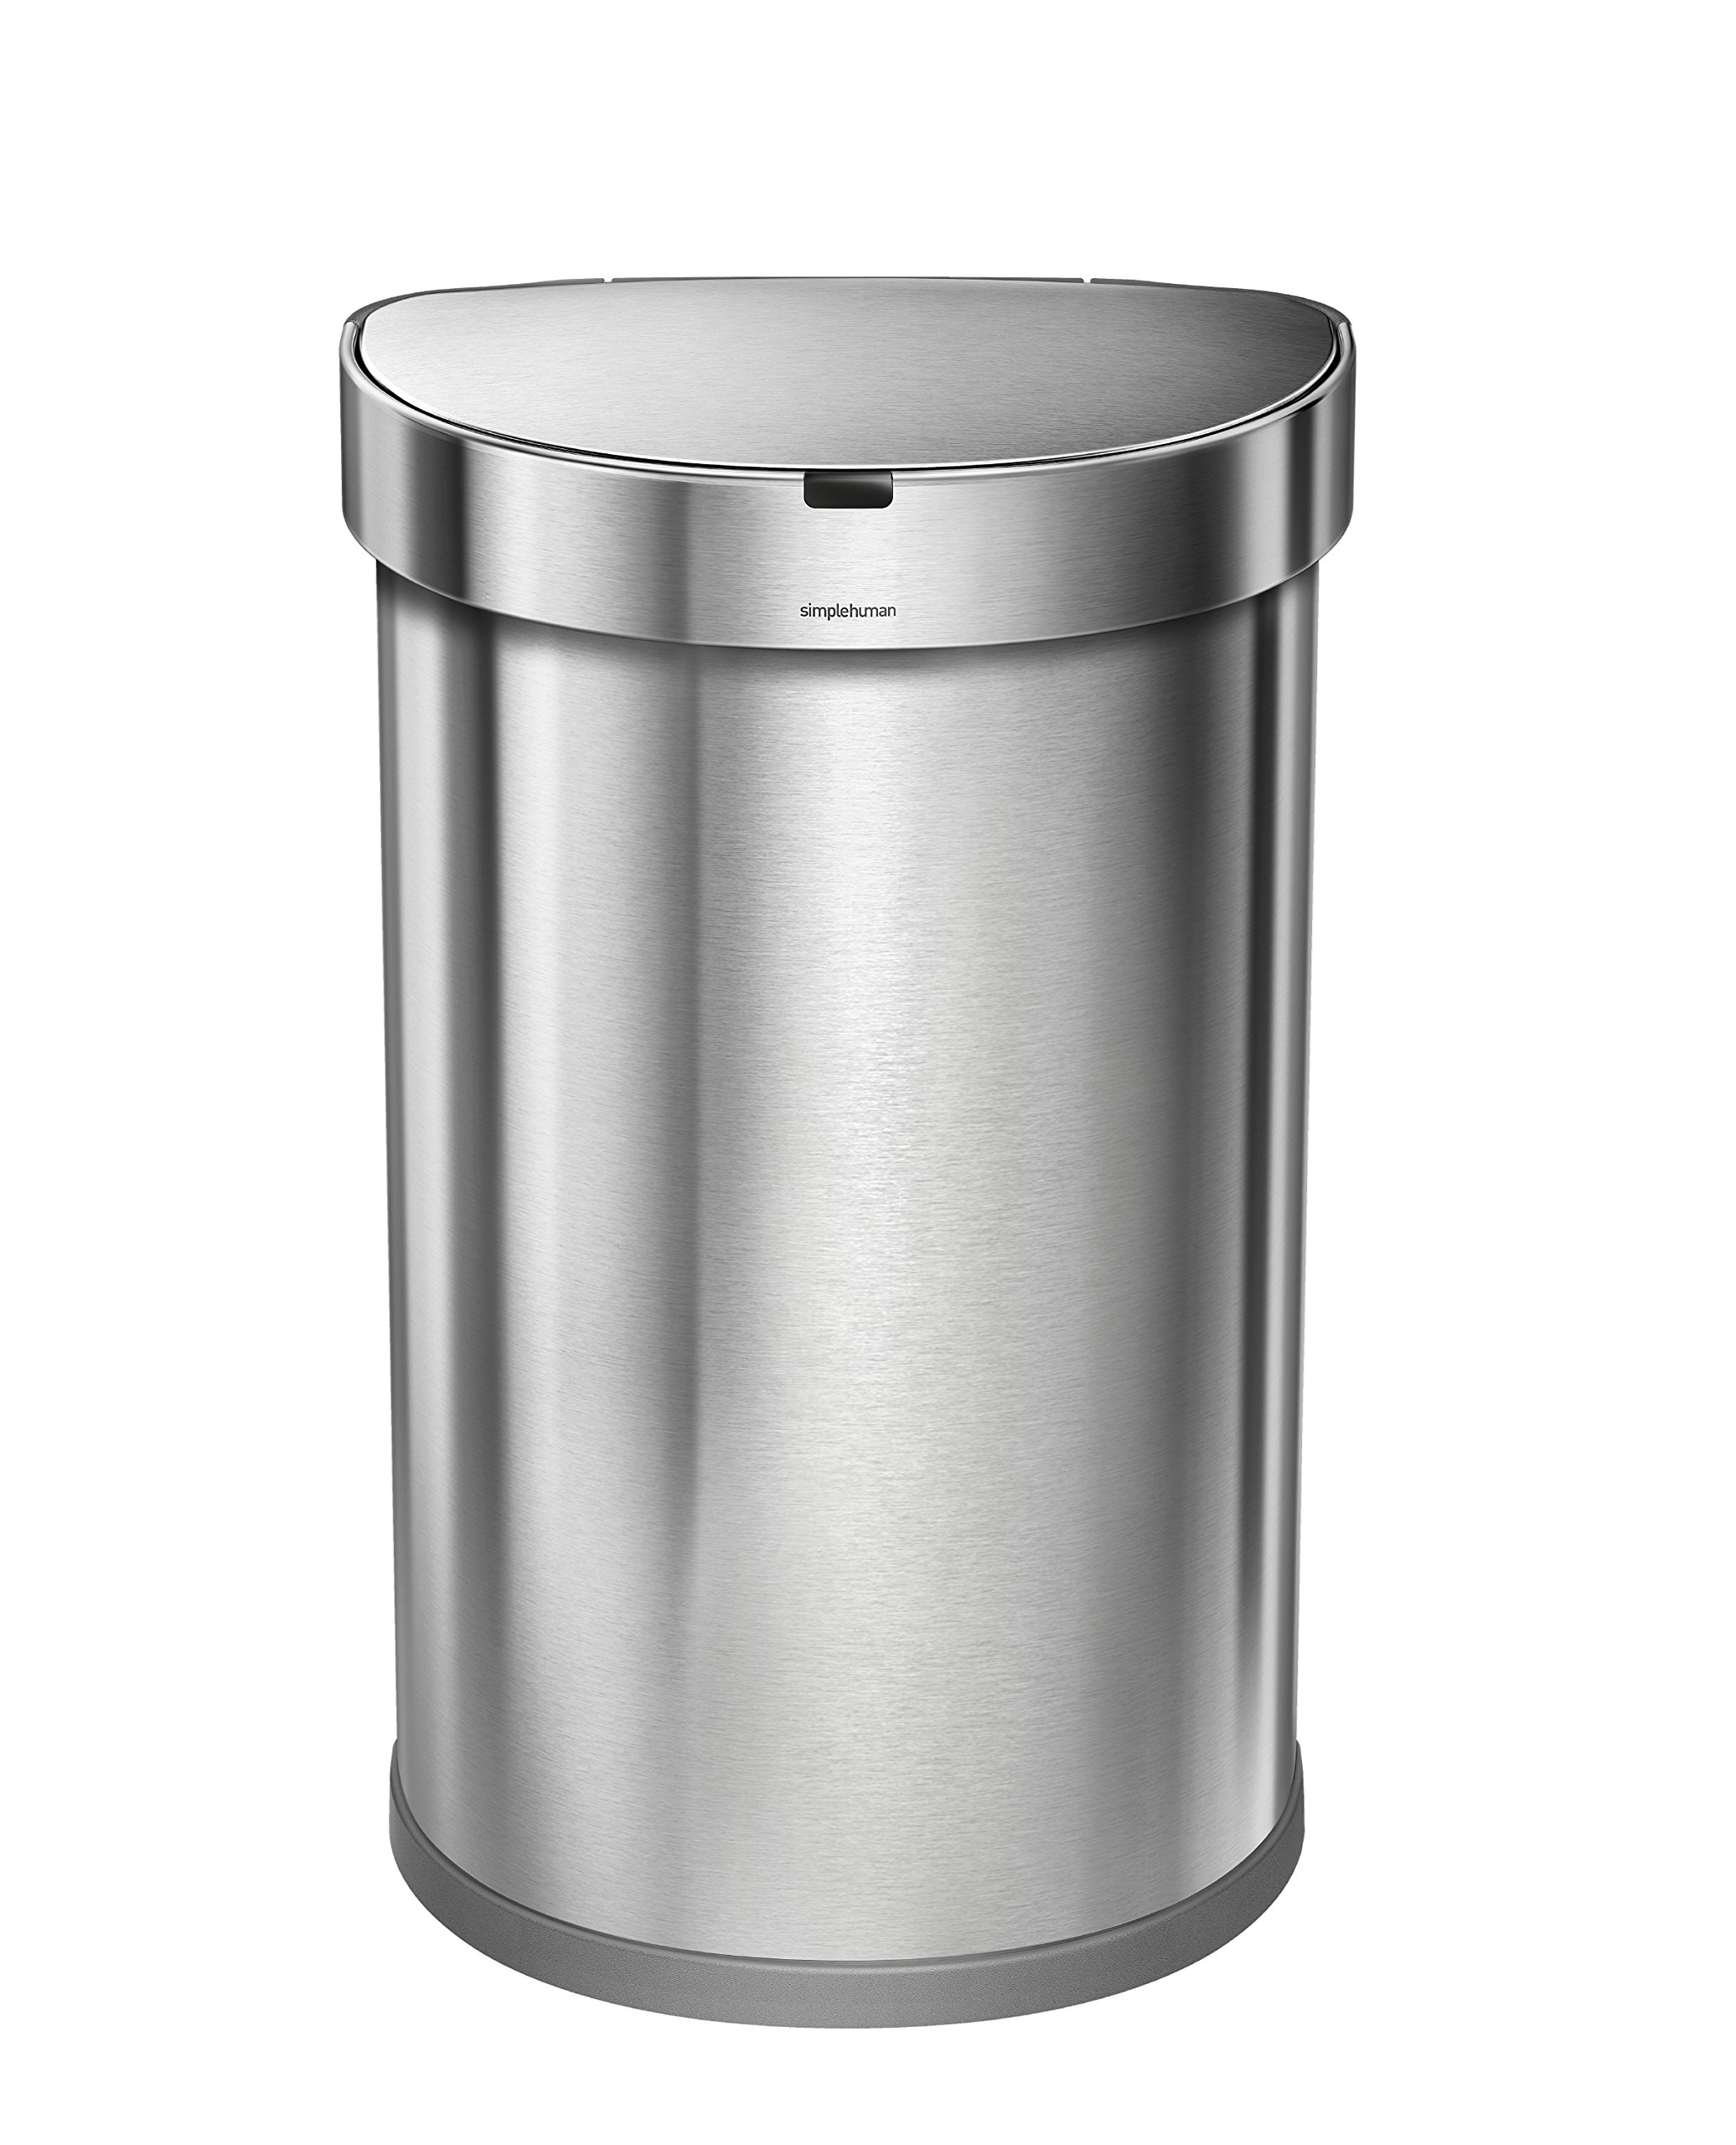 simplehuman 45L Semi-Round Sensor Can, Automatic/Touchless Kitchen Trash Can, Brushed Stainless Steel, 45 L / 11.8 Gal